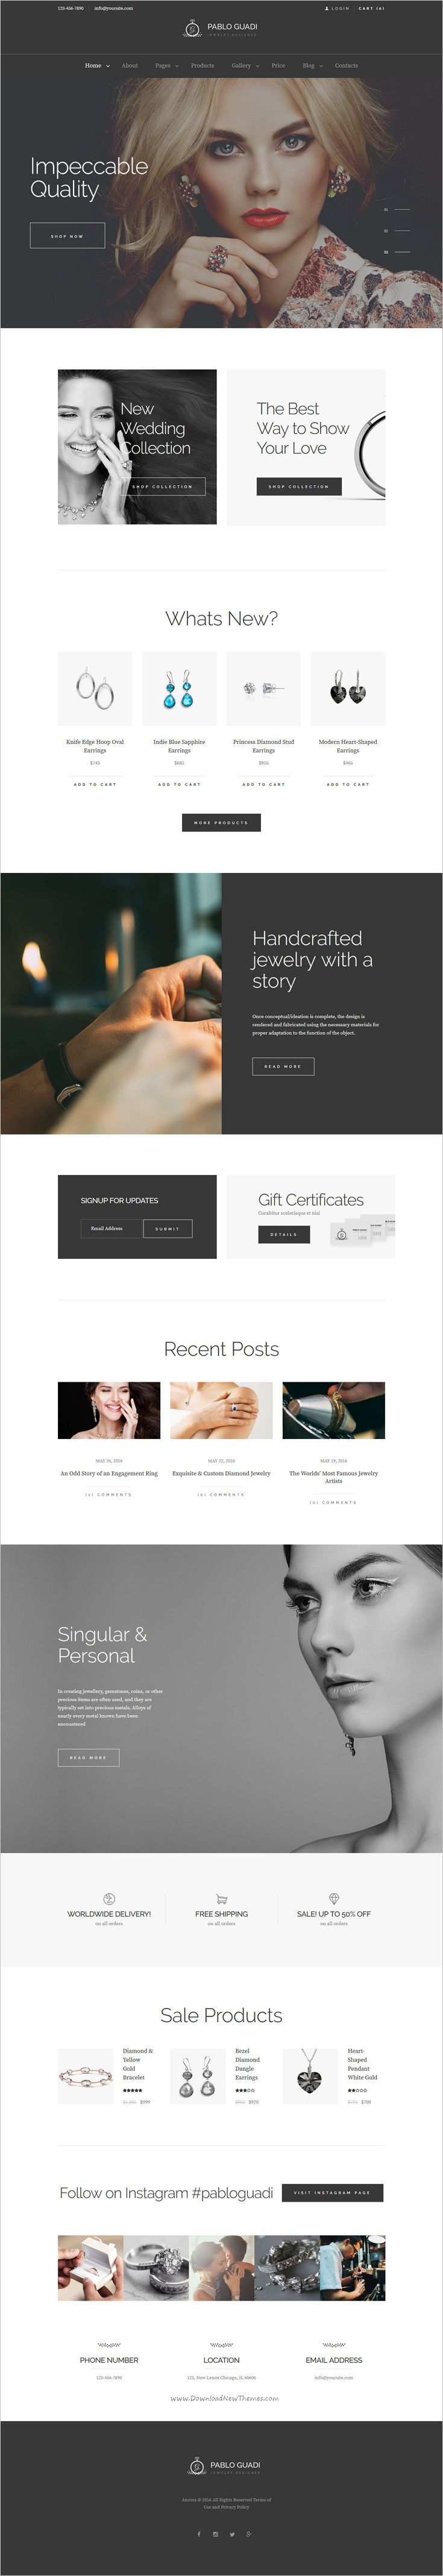 Pablo Guadi is a modern design responsive 2in1 #WordPress theme for #jewelry #designer & handcrafted jewelry online store website download now➩ https://themeforest.net/item/pablo-guadi-jewelry-designer-handcrafted-jewelry-online-shop-wp-theme/16880109?ref=Datasata